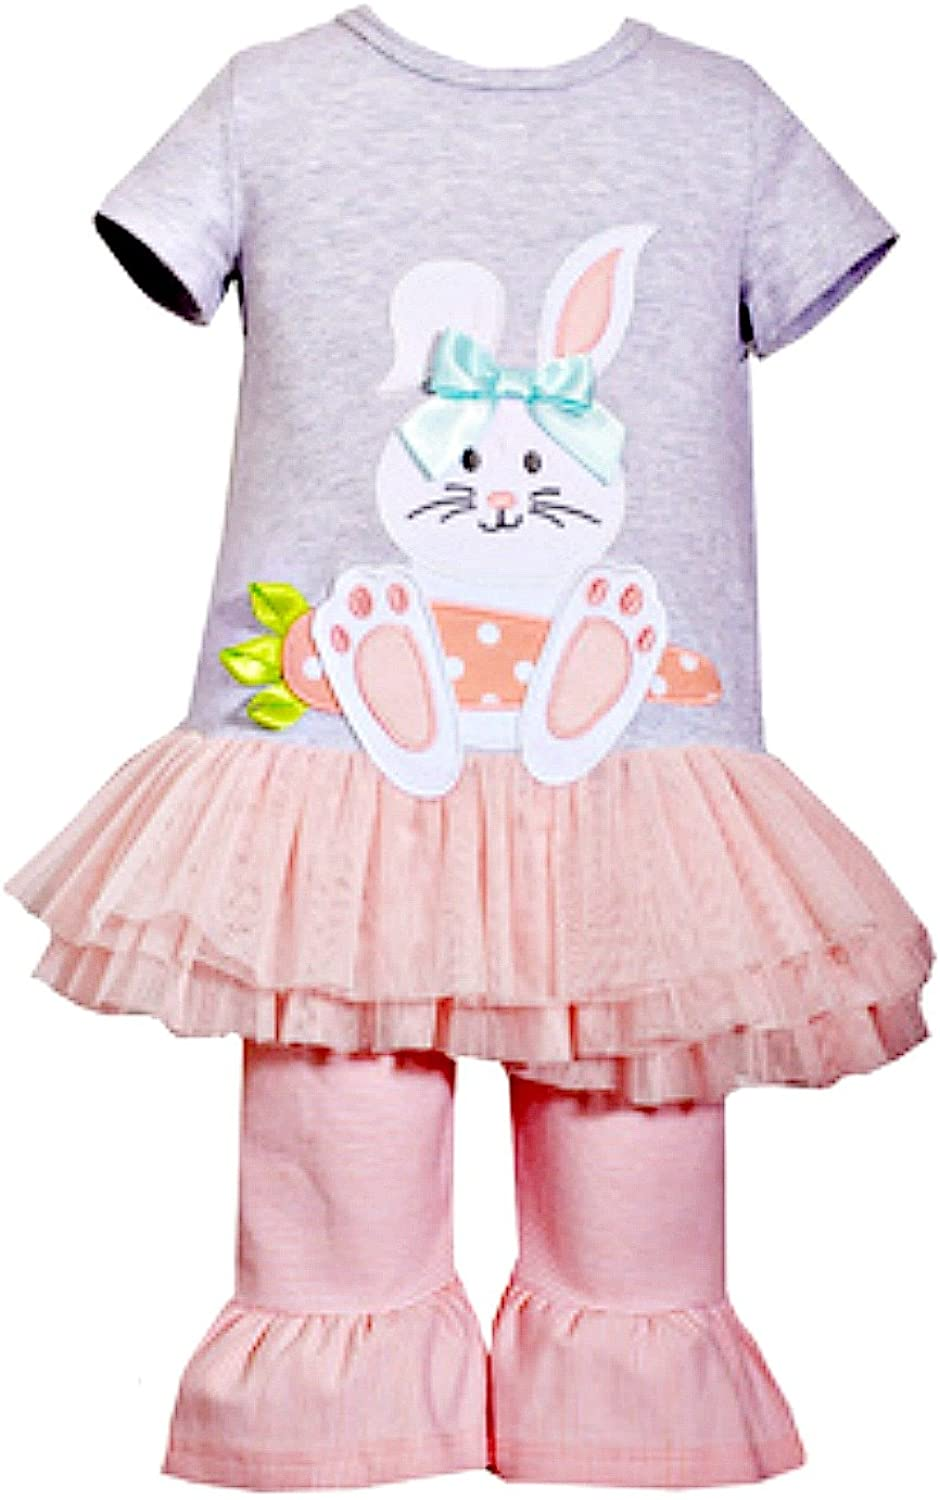 Bonnie Jean Toddler Girl's Easter Outfit Bunny Top and Leggings Set